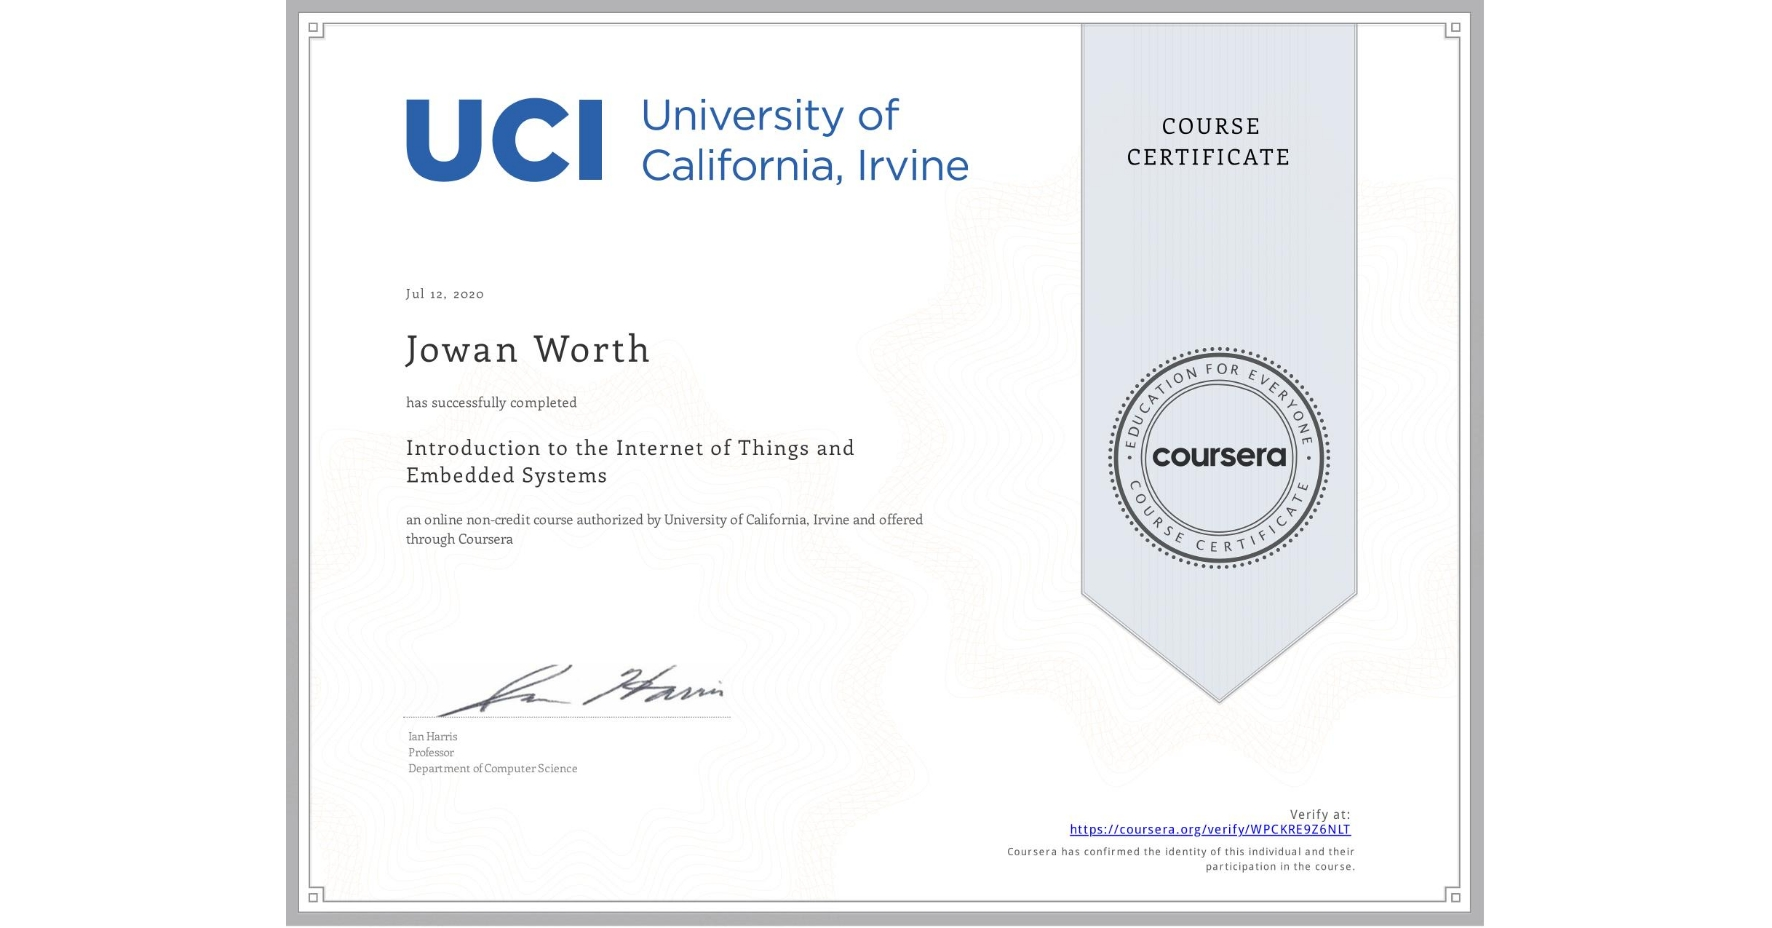 View certificate for Jowan Worth, Introduction to the Internet of Things and Embedded Systems, an online non-credit course authorized by University of California, Irvine and offered through Coursera